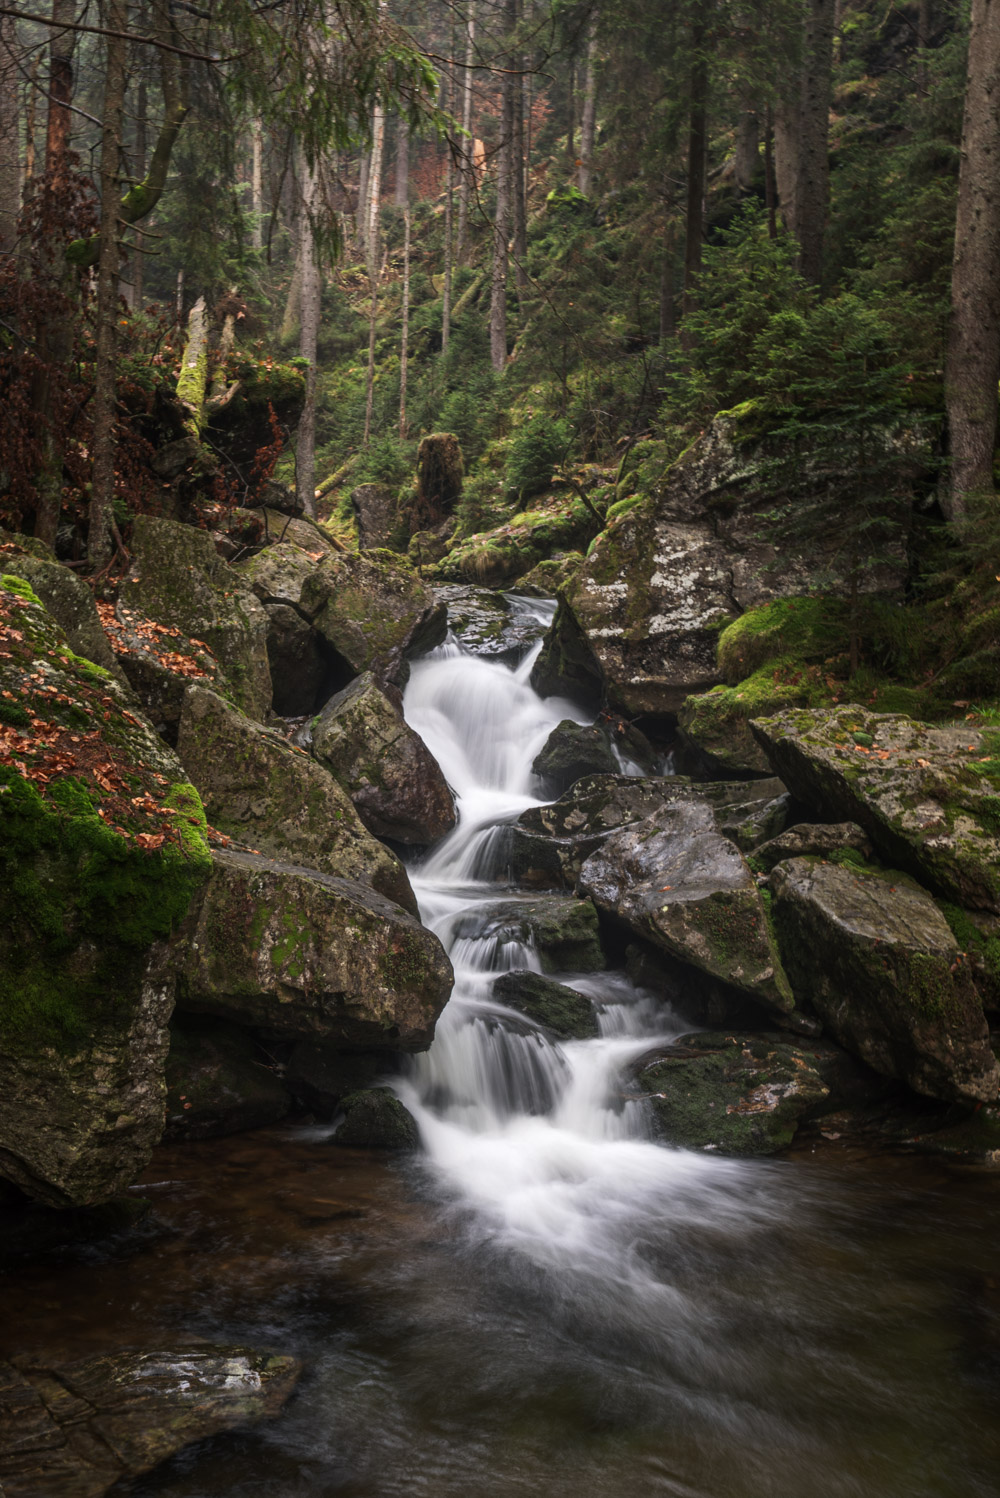 Long exposure of a small waterfall in a lush forest during while winter hiking in Bavaria